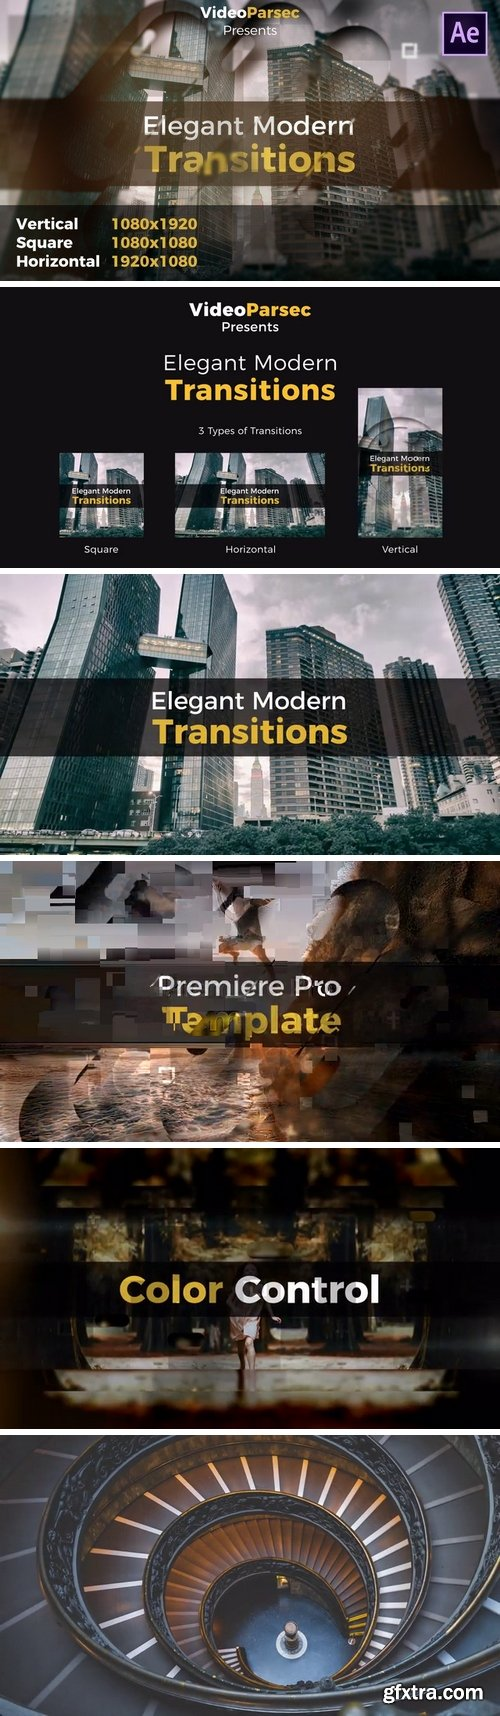 MA - Elegant Modern Transitions After Effects Templates 149121